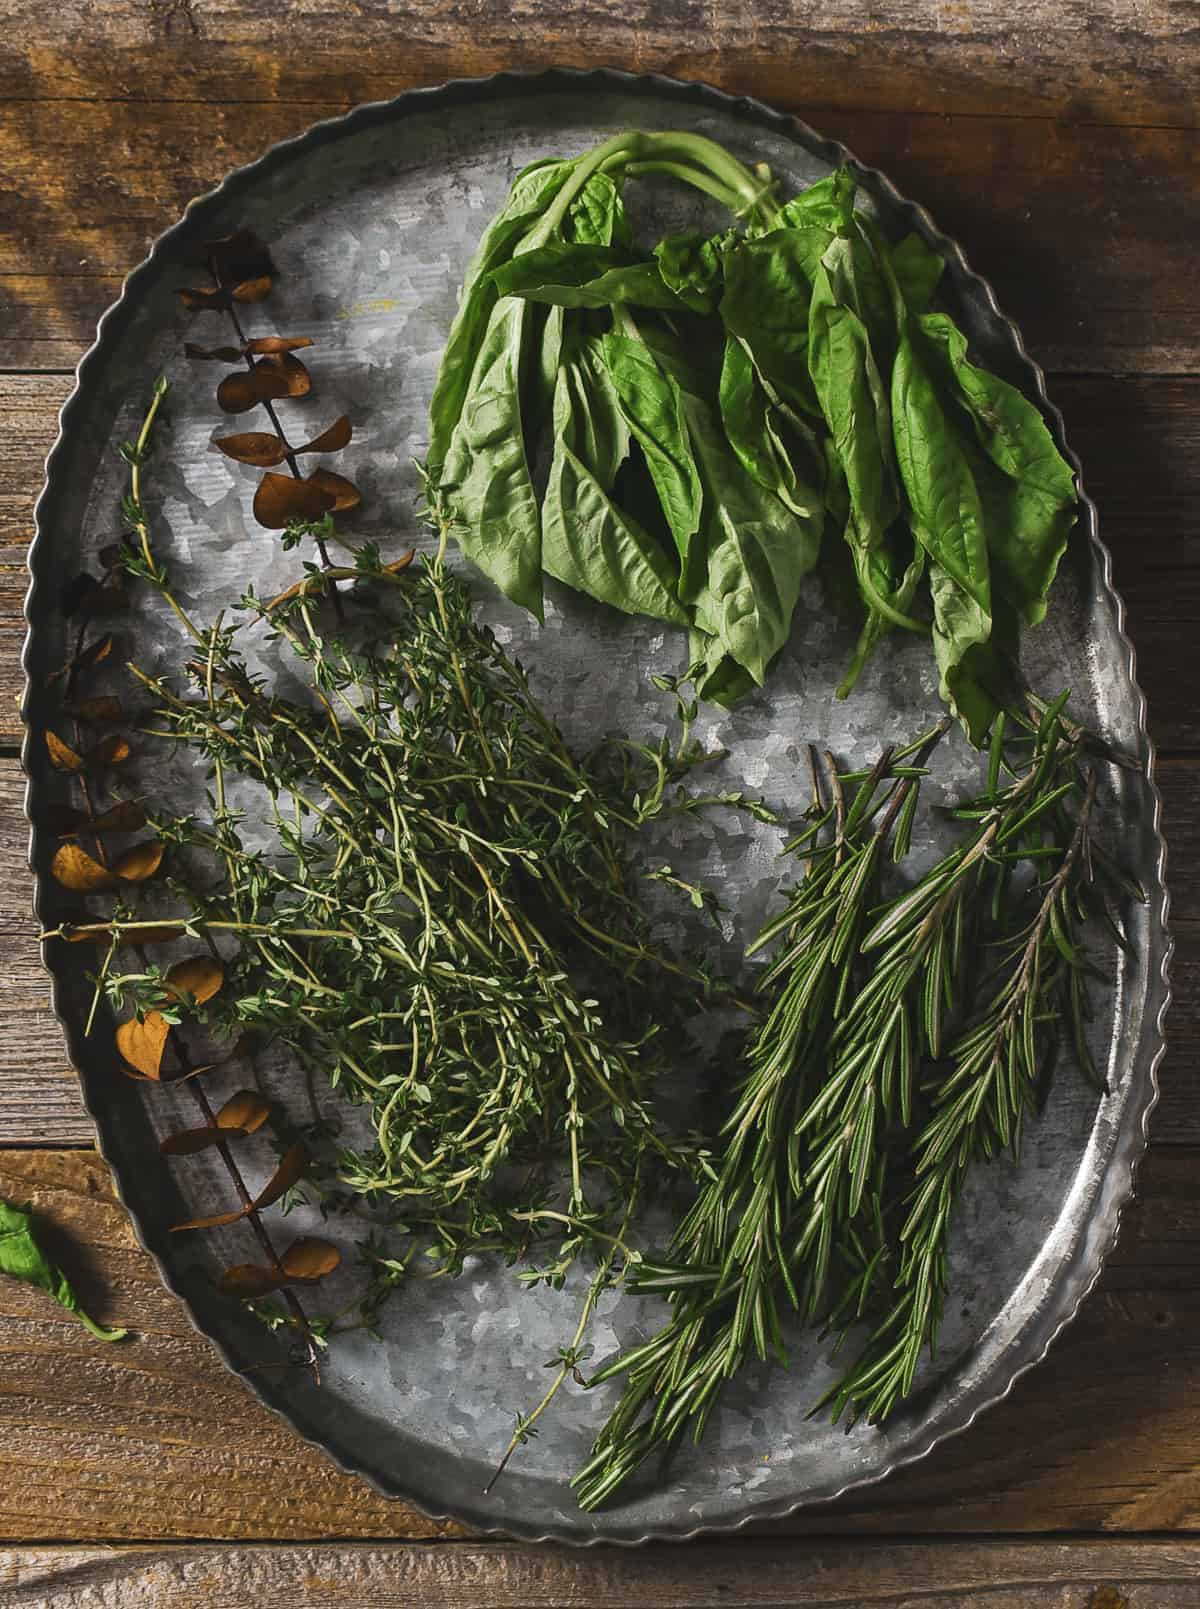 Fresh basil, thyme, and rosemary on tray.